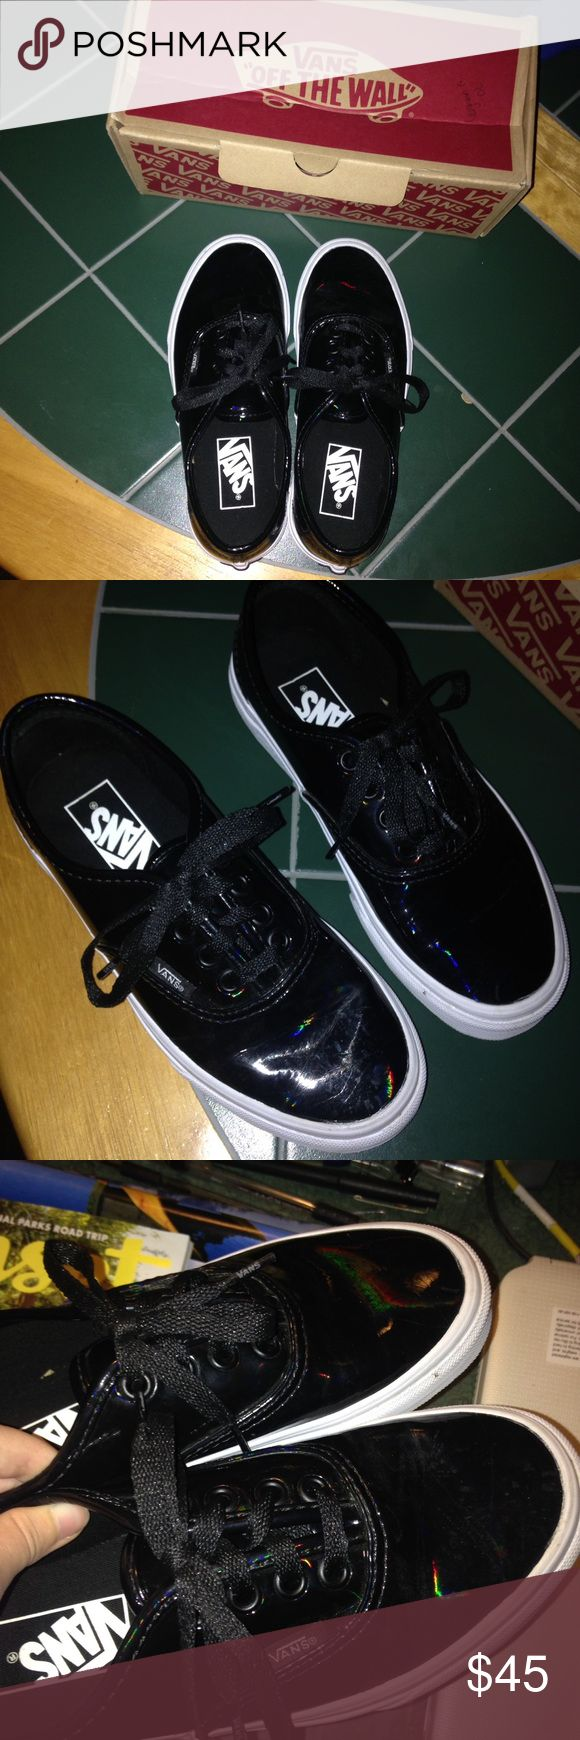 Leather Vans Patent leather vans, size 3.5 in men and 5 in women's Vans Shoes